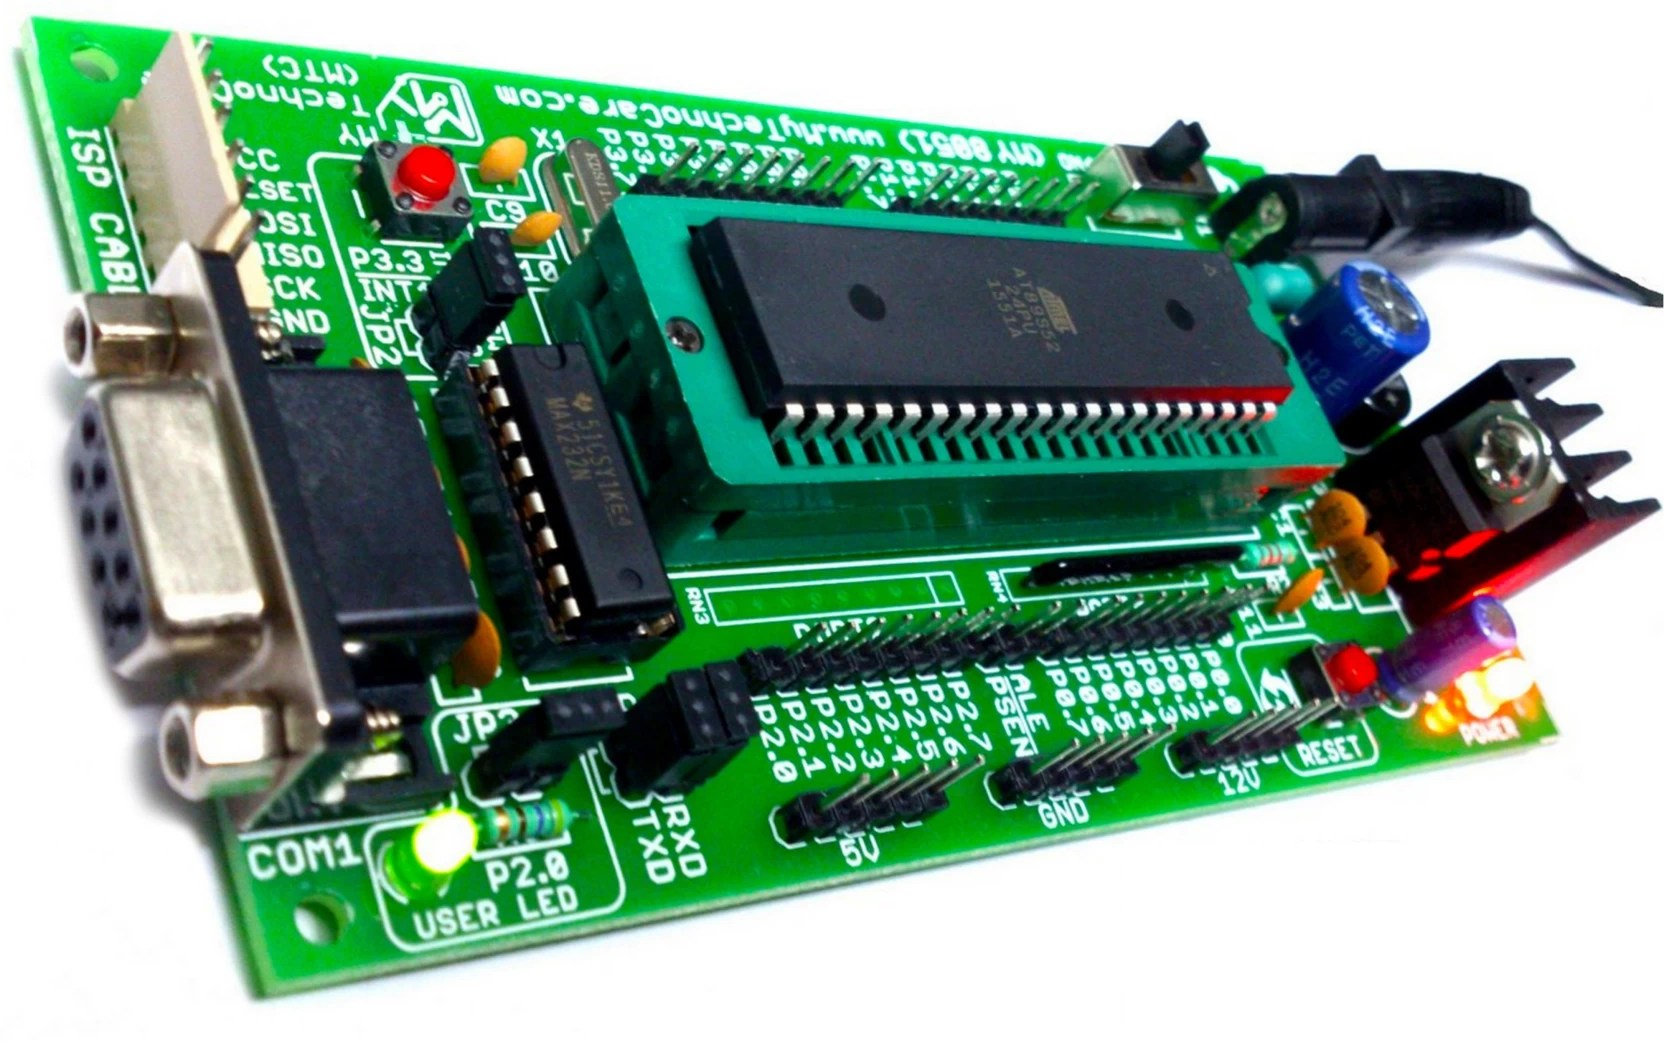 small resolution of my technocare 8051 development board zif socket max232 at89s52 microcontroller ic project evaluation kit support atmel at89s51 xx 89cxx 89v51rd2